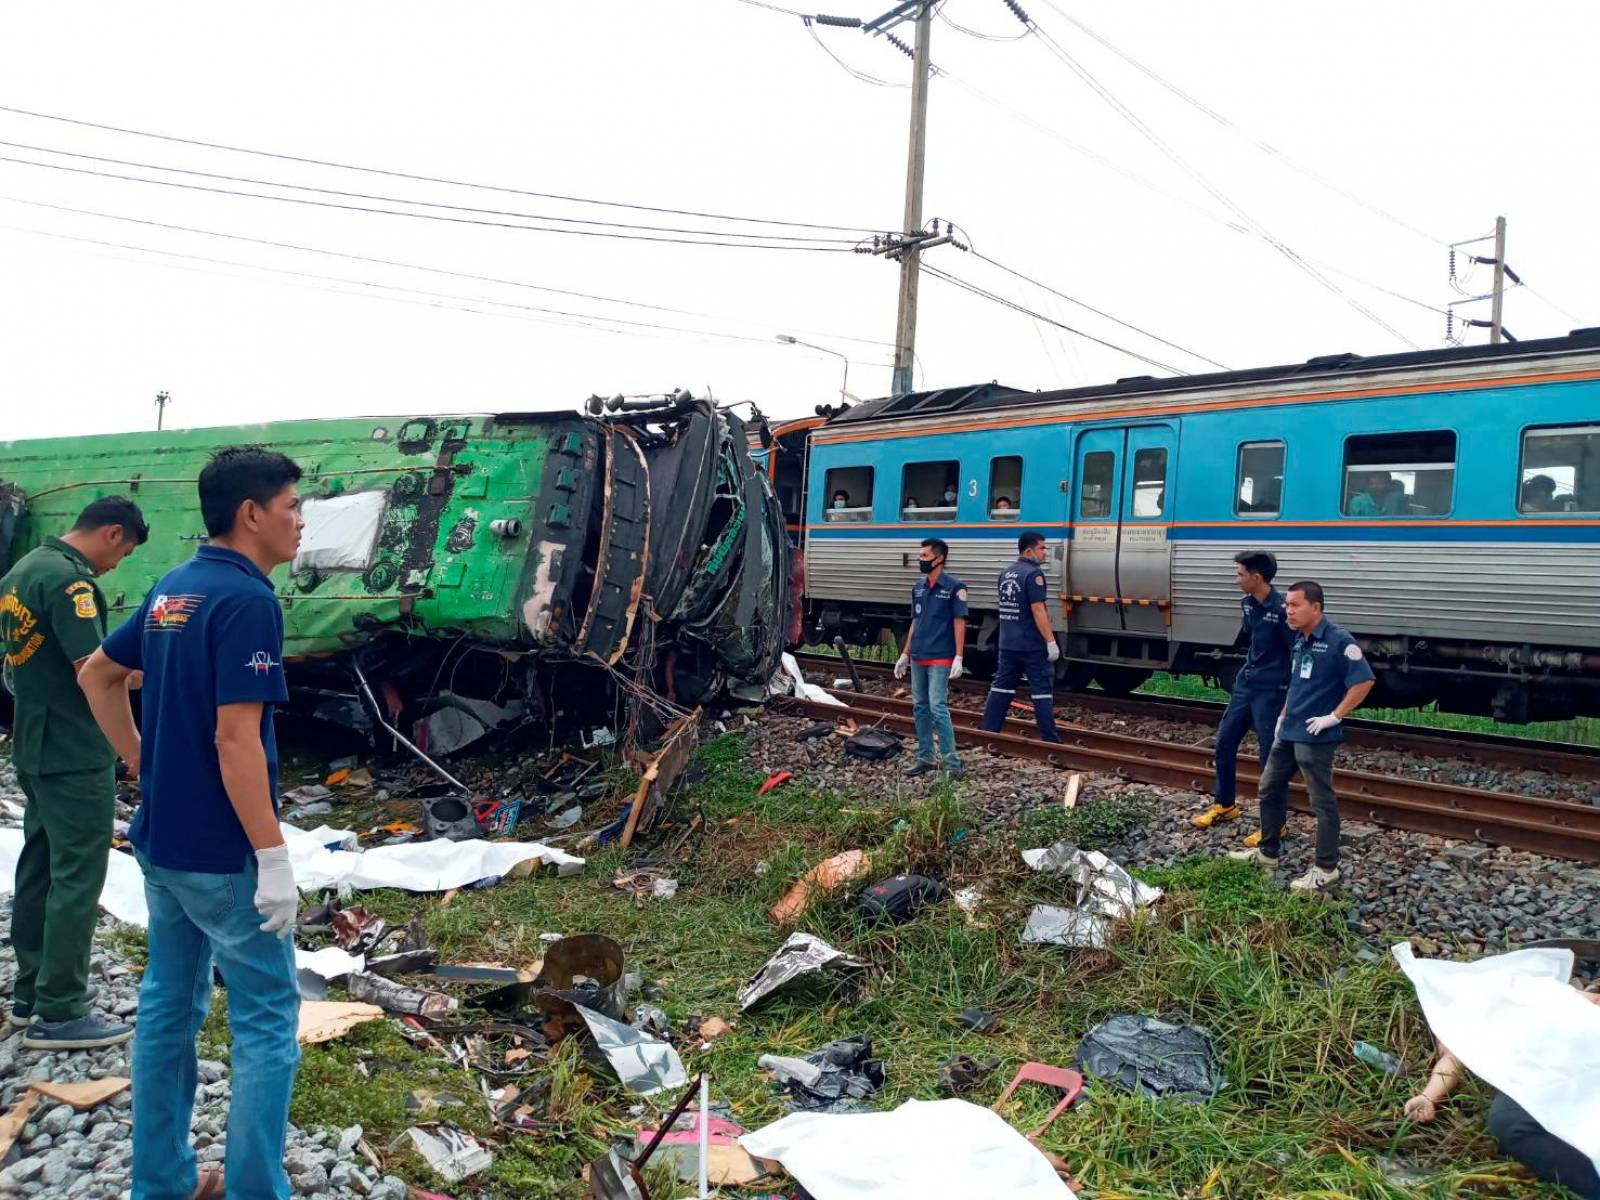 Rescue workers stand at the crash site where a train collided with a paseengers bus in Chacheongsao province in central Thailand